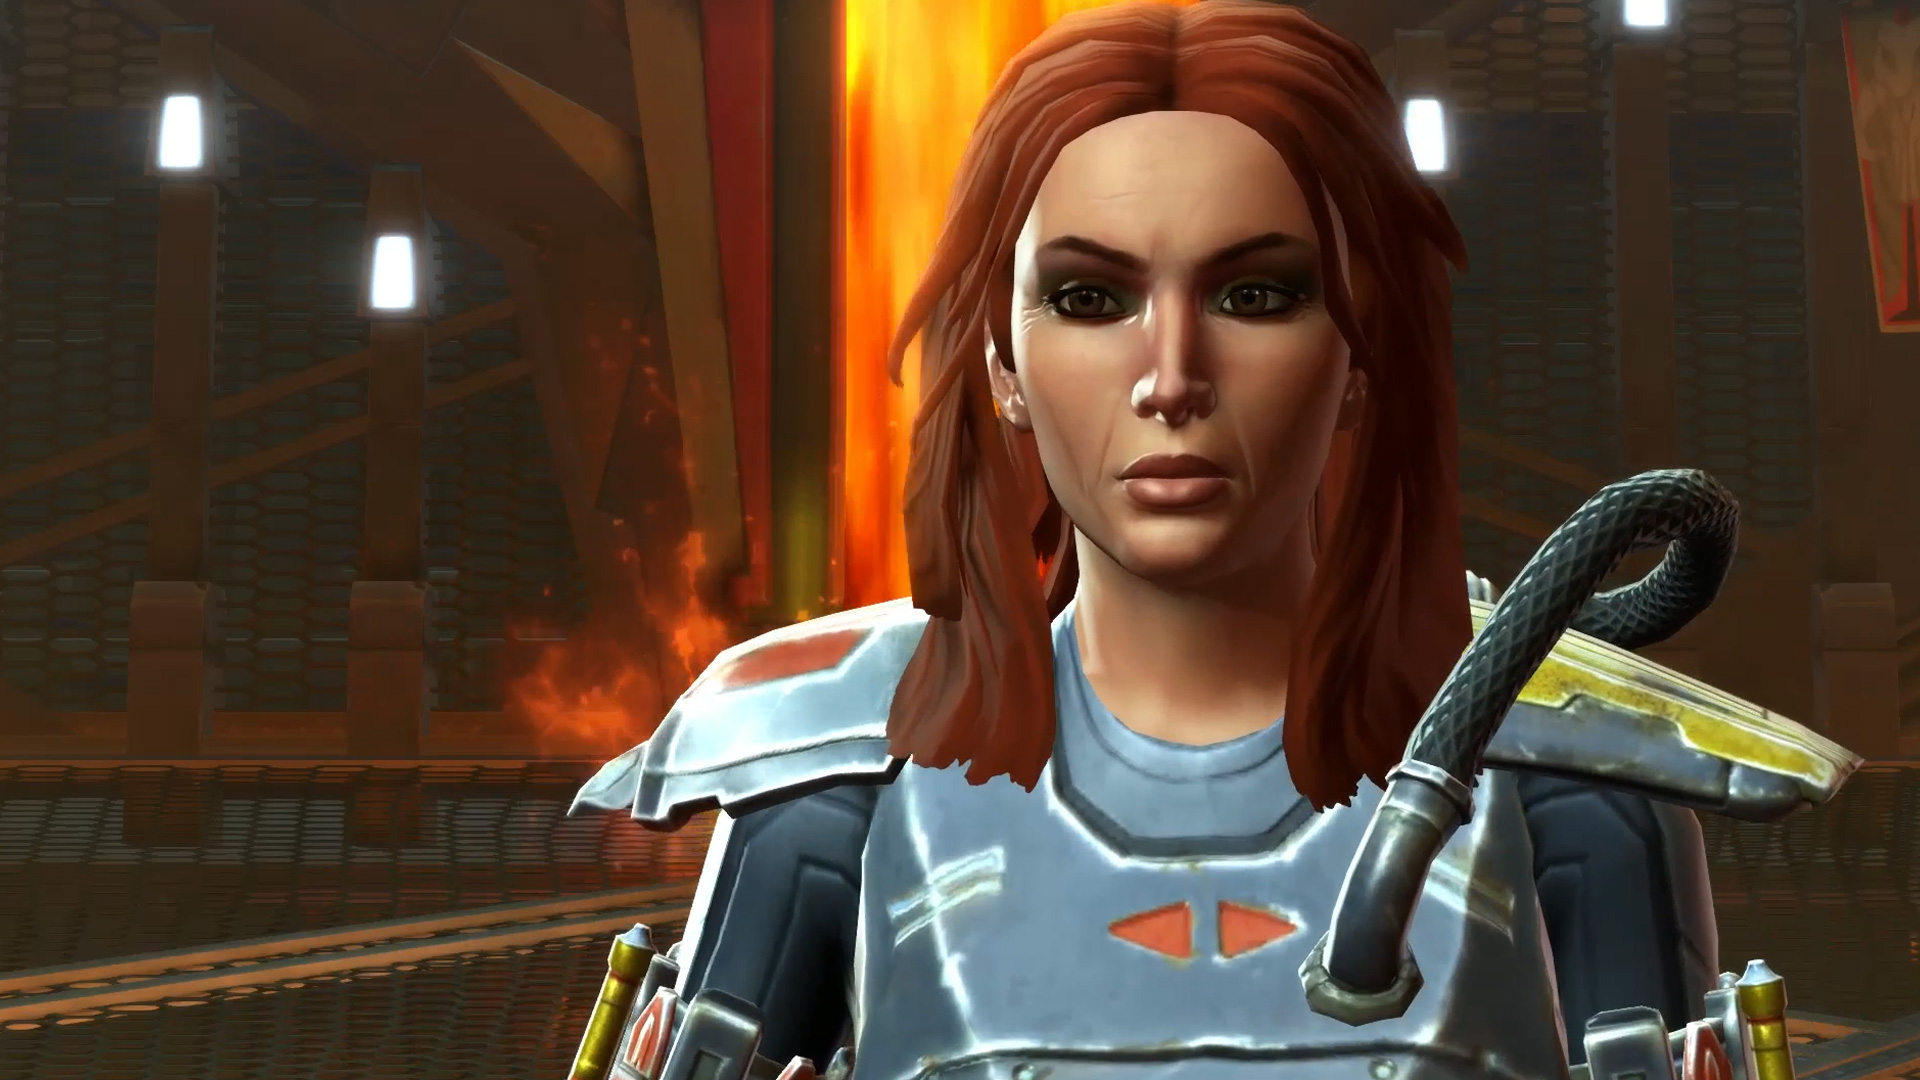 Shae Vizla Returns As A Subscriber Reward For Subscribing Between August 28th October 5th 2020 In Swtor